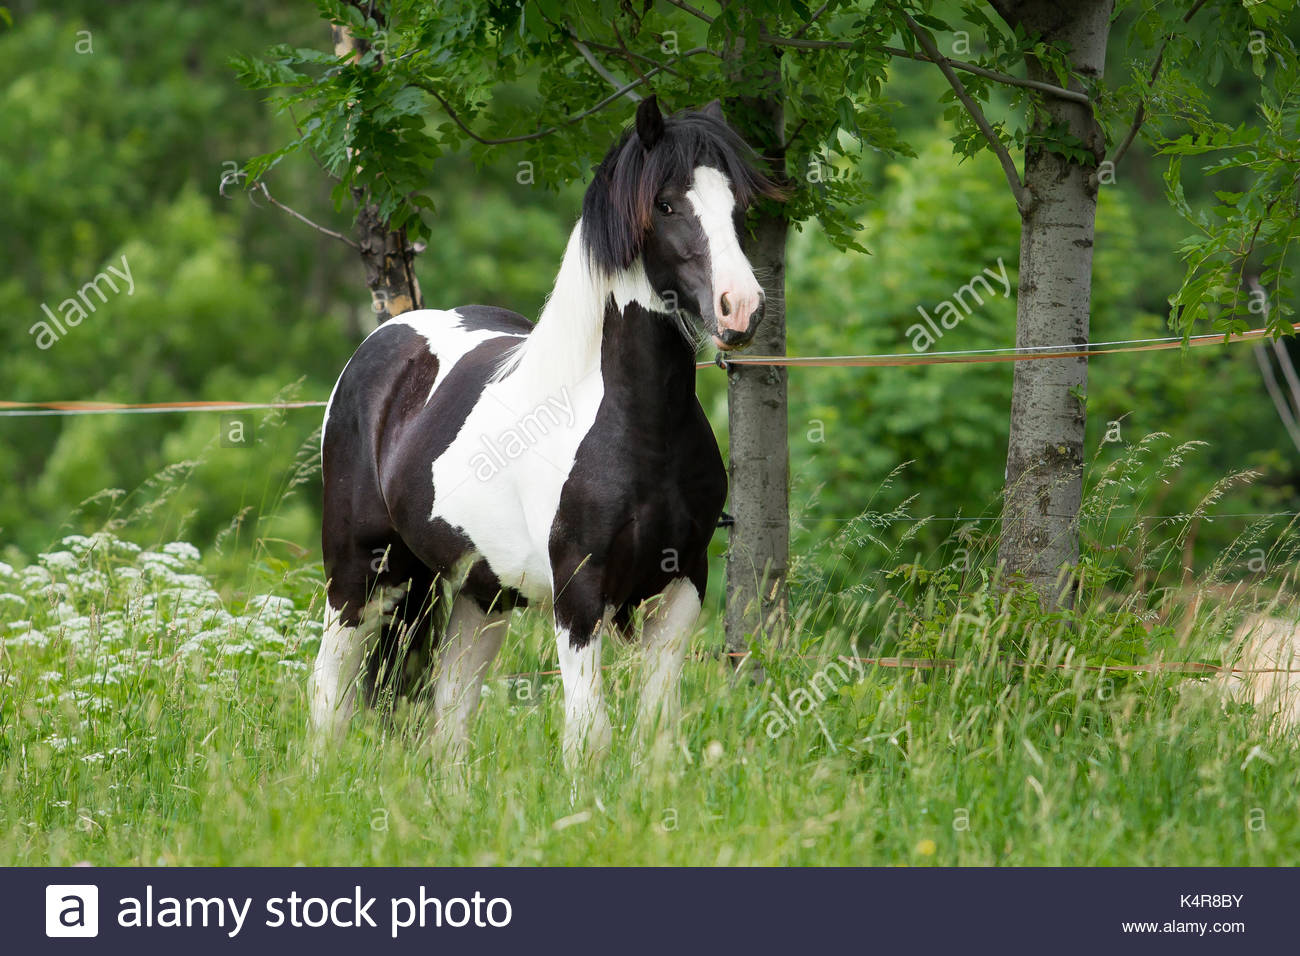 Black and white Gypsy Horse Cob Vanner colt - Stock Image